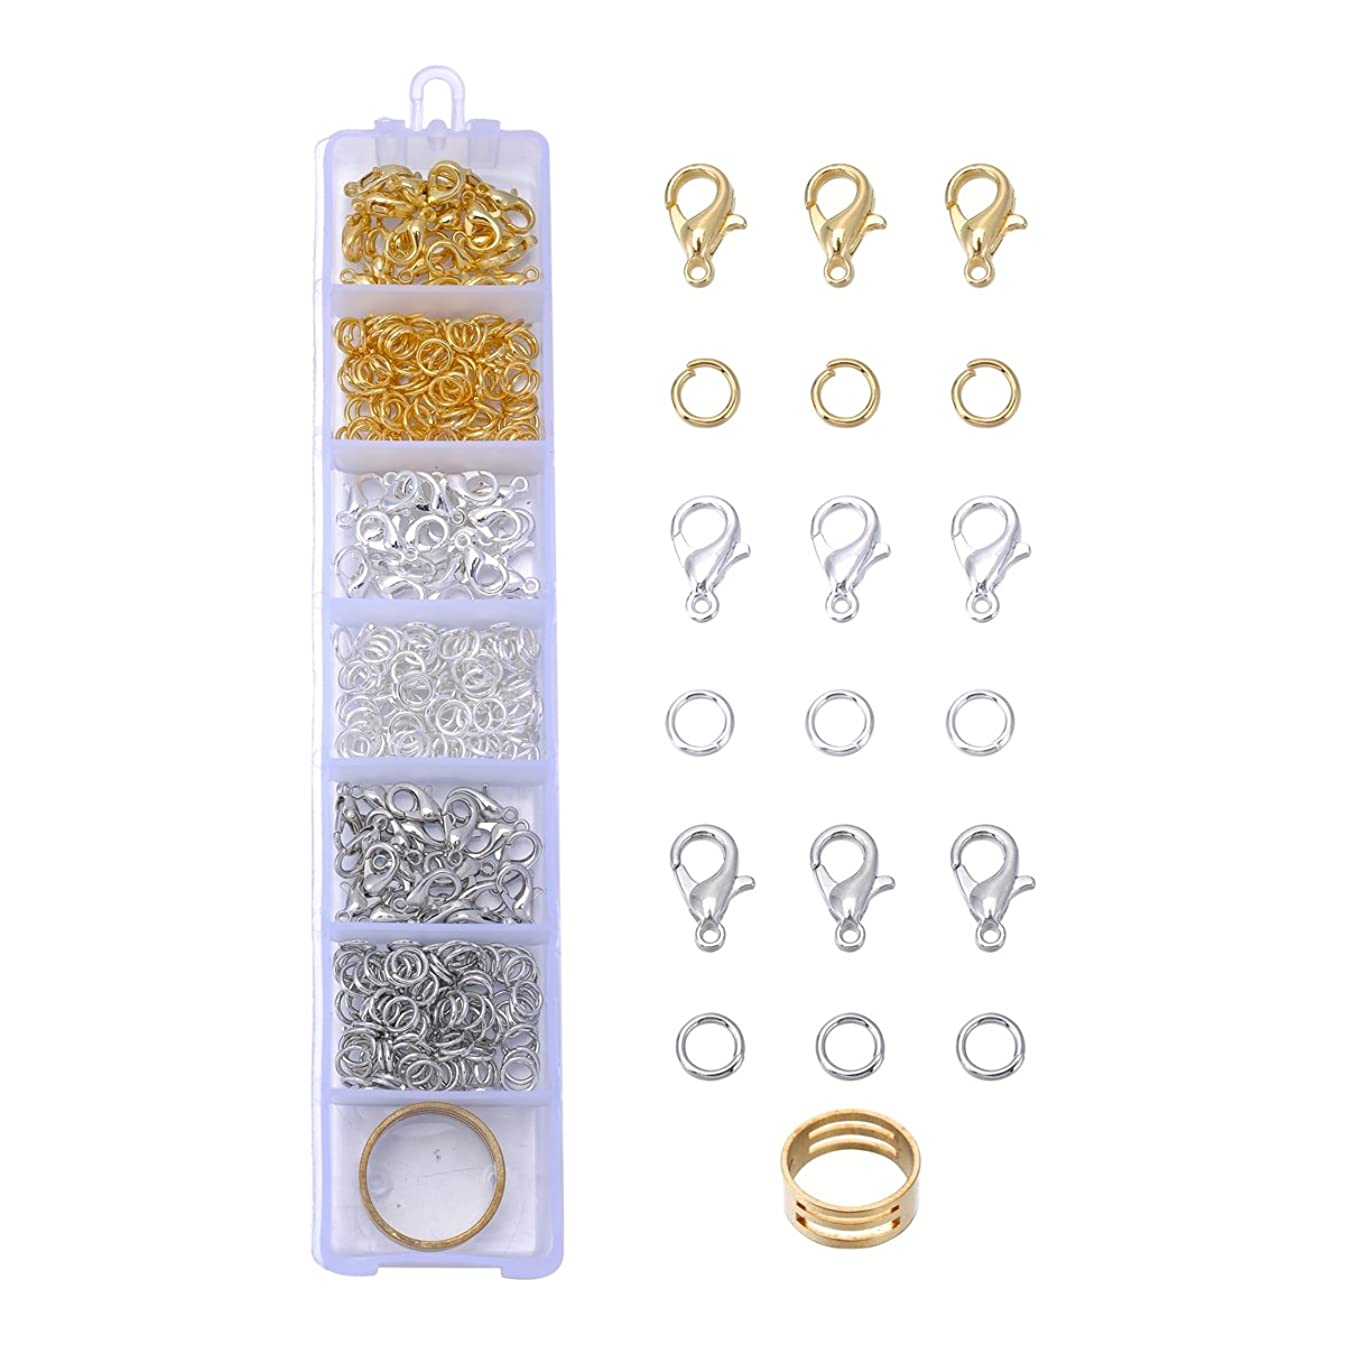 HooAMI 3 Colors Lobster Claw Clasps and 3 Colors Open Jump Rings for Jewelry Making About 360pcs 5mm 10mmx5mm